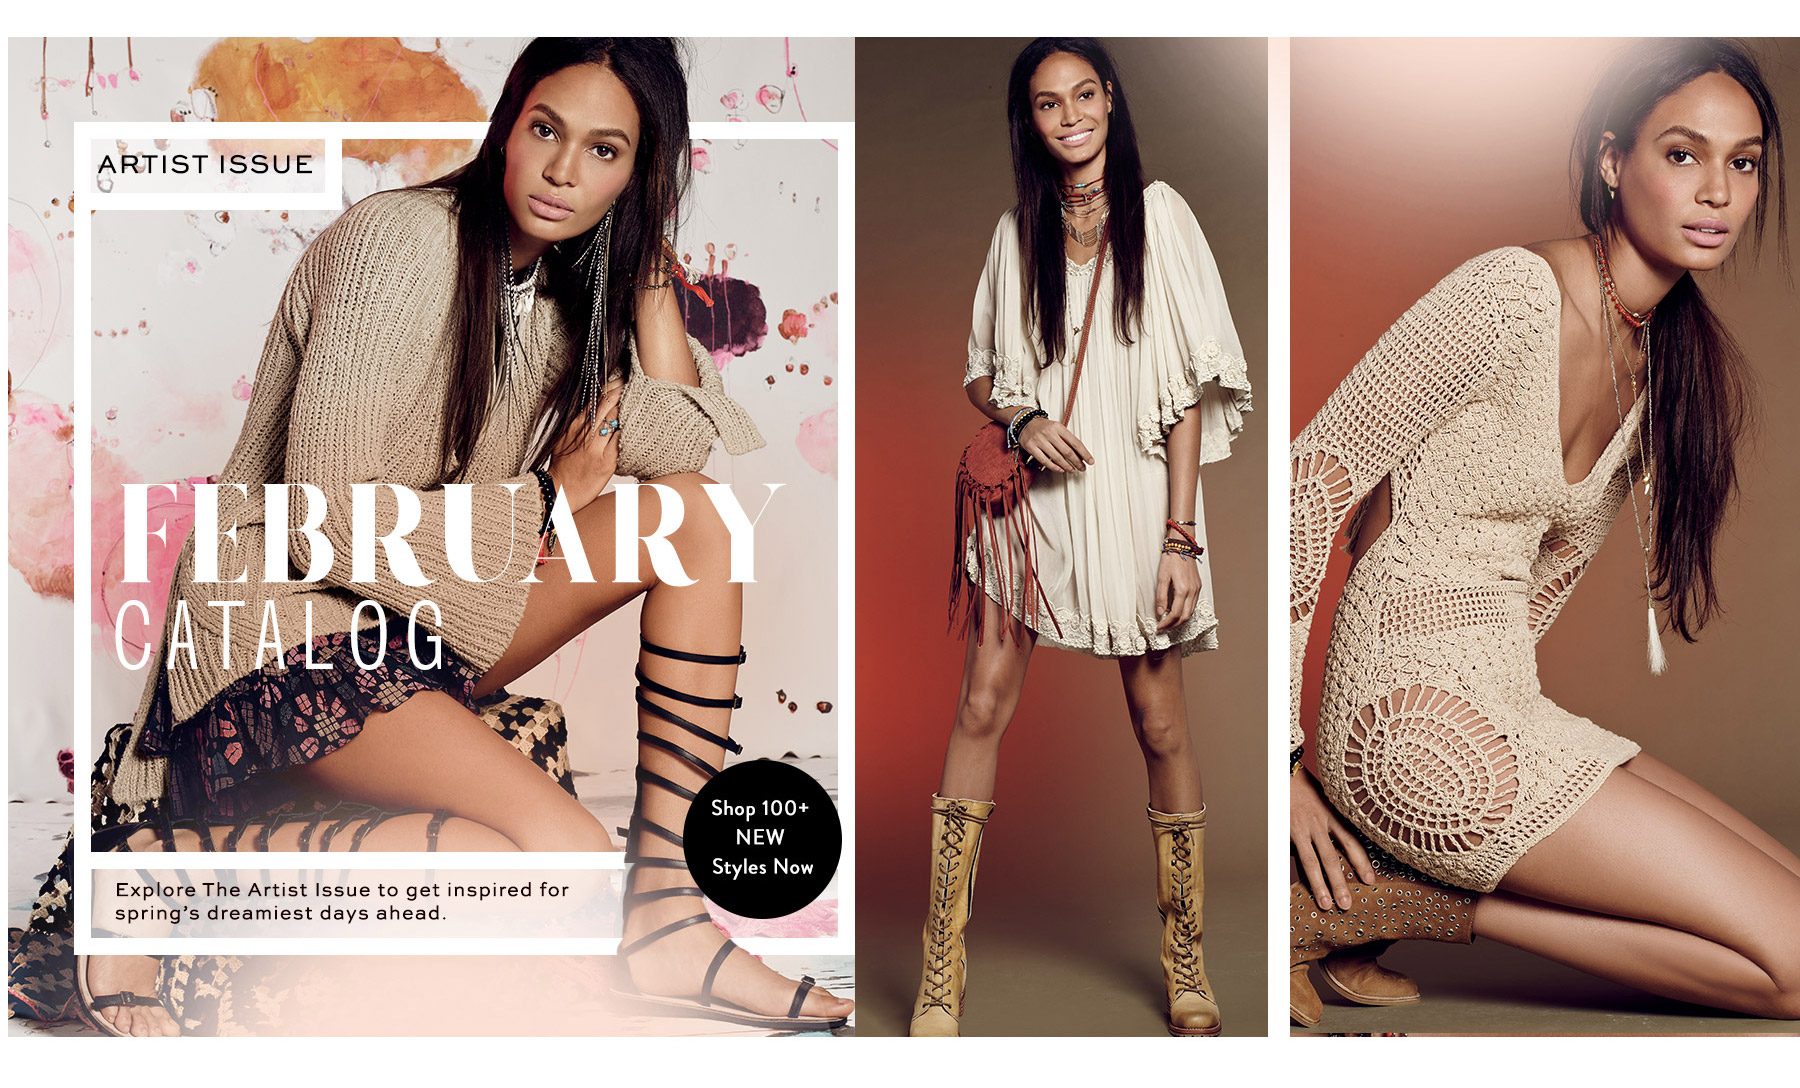 Shop the Feburary 2016 Catalog at Free People